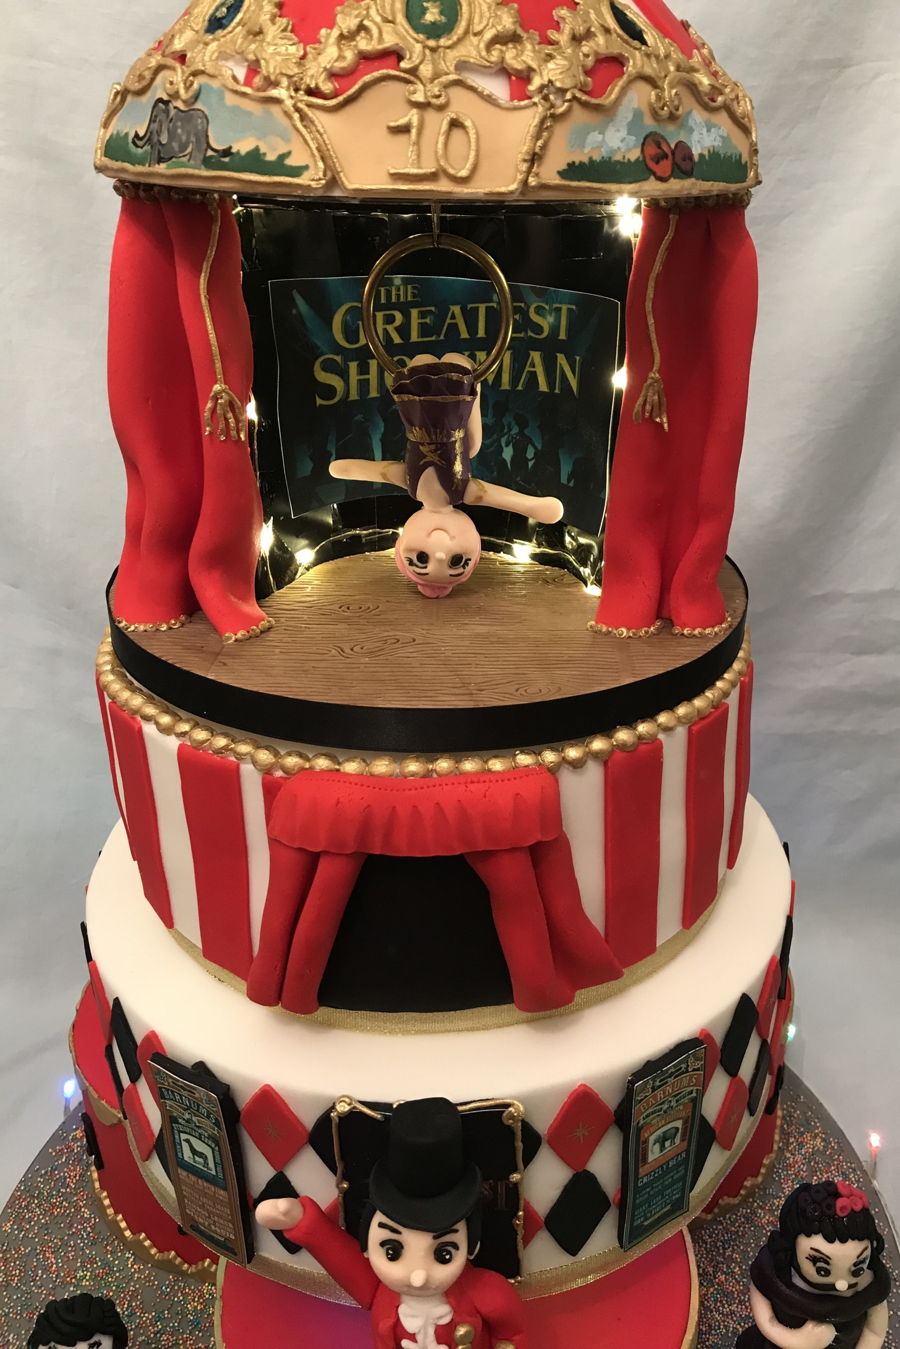 The Greatest Show Cakecentral Com